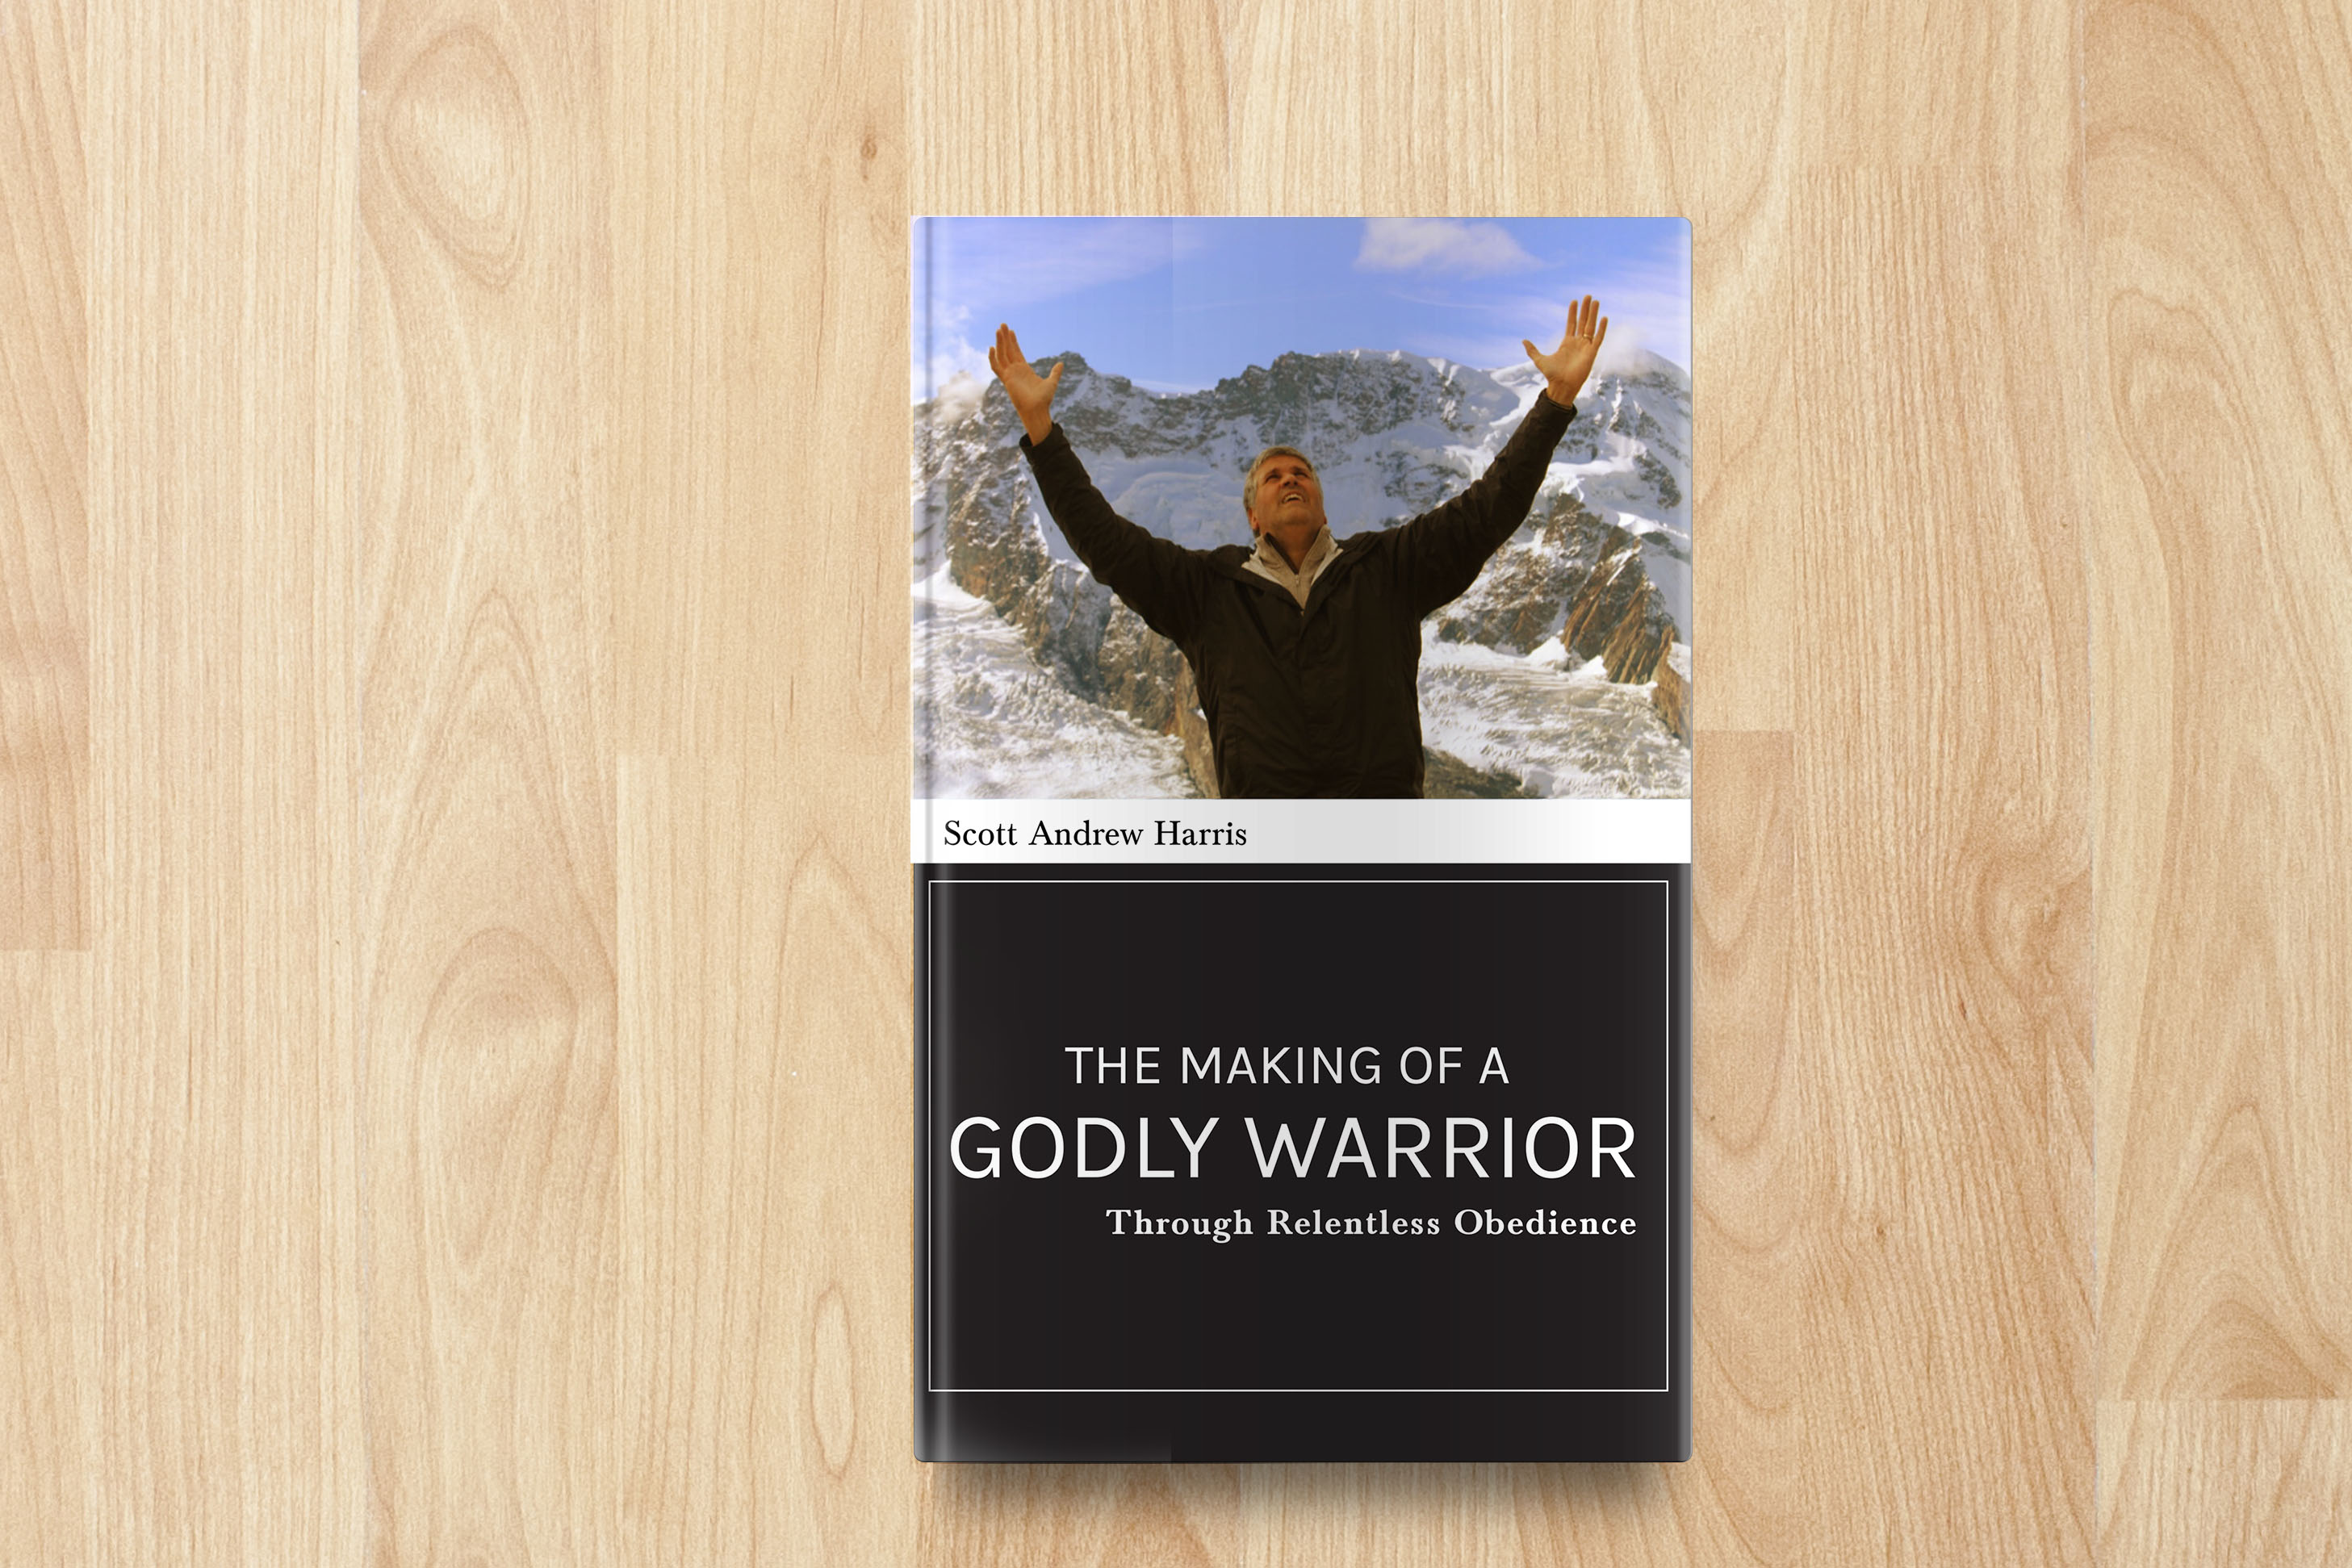 The Making of a Godly Warrior: Through Relentless Obedience